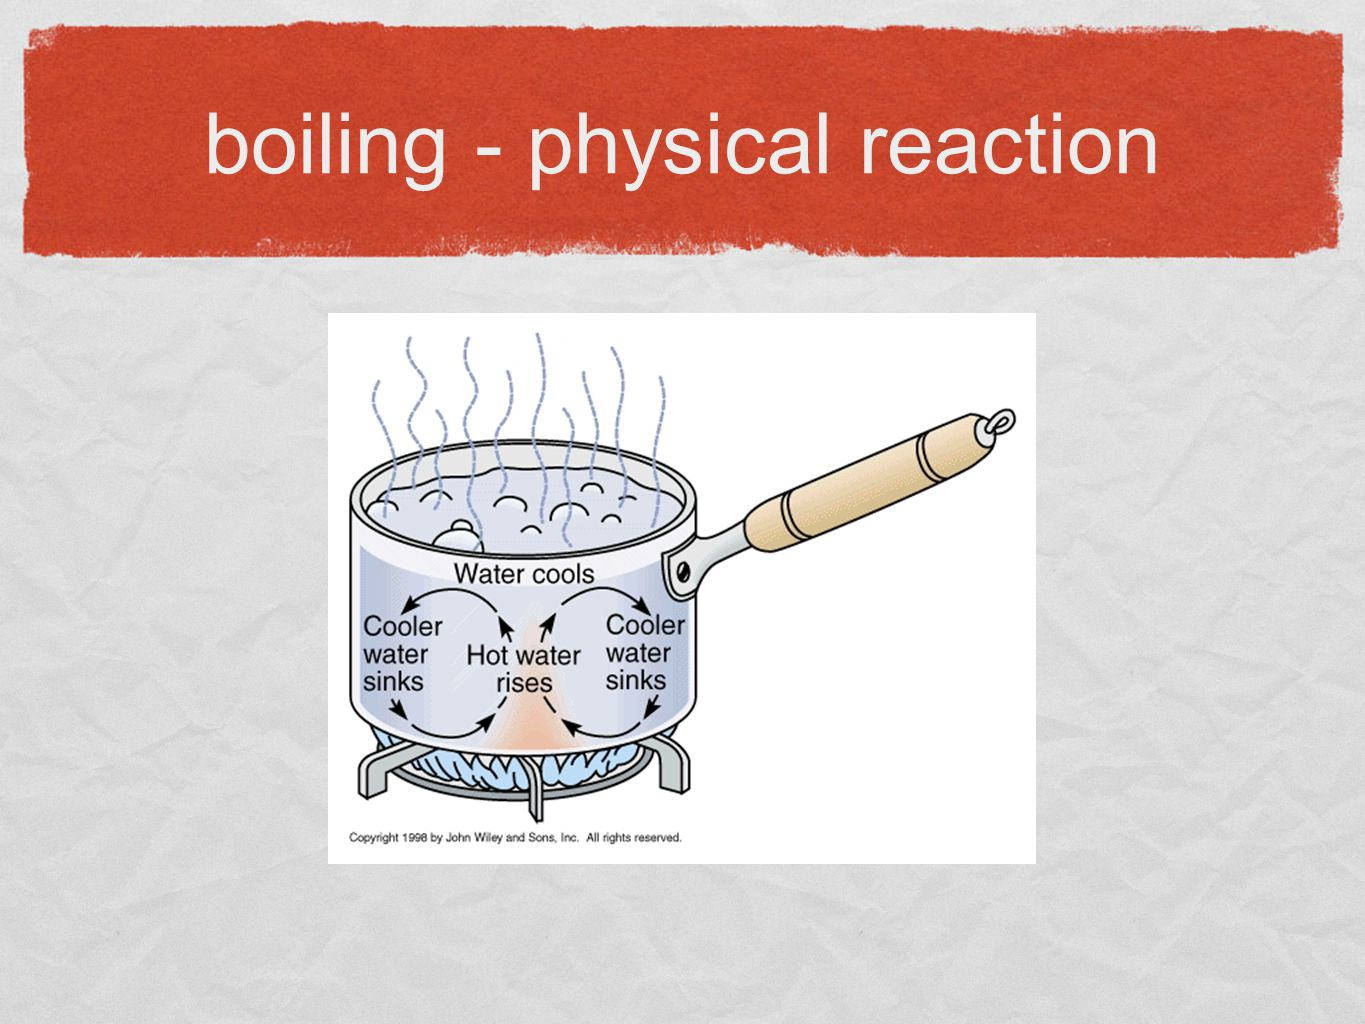 boiling - physical reaction